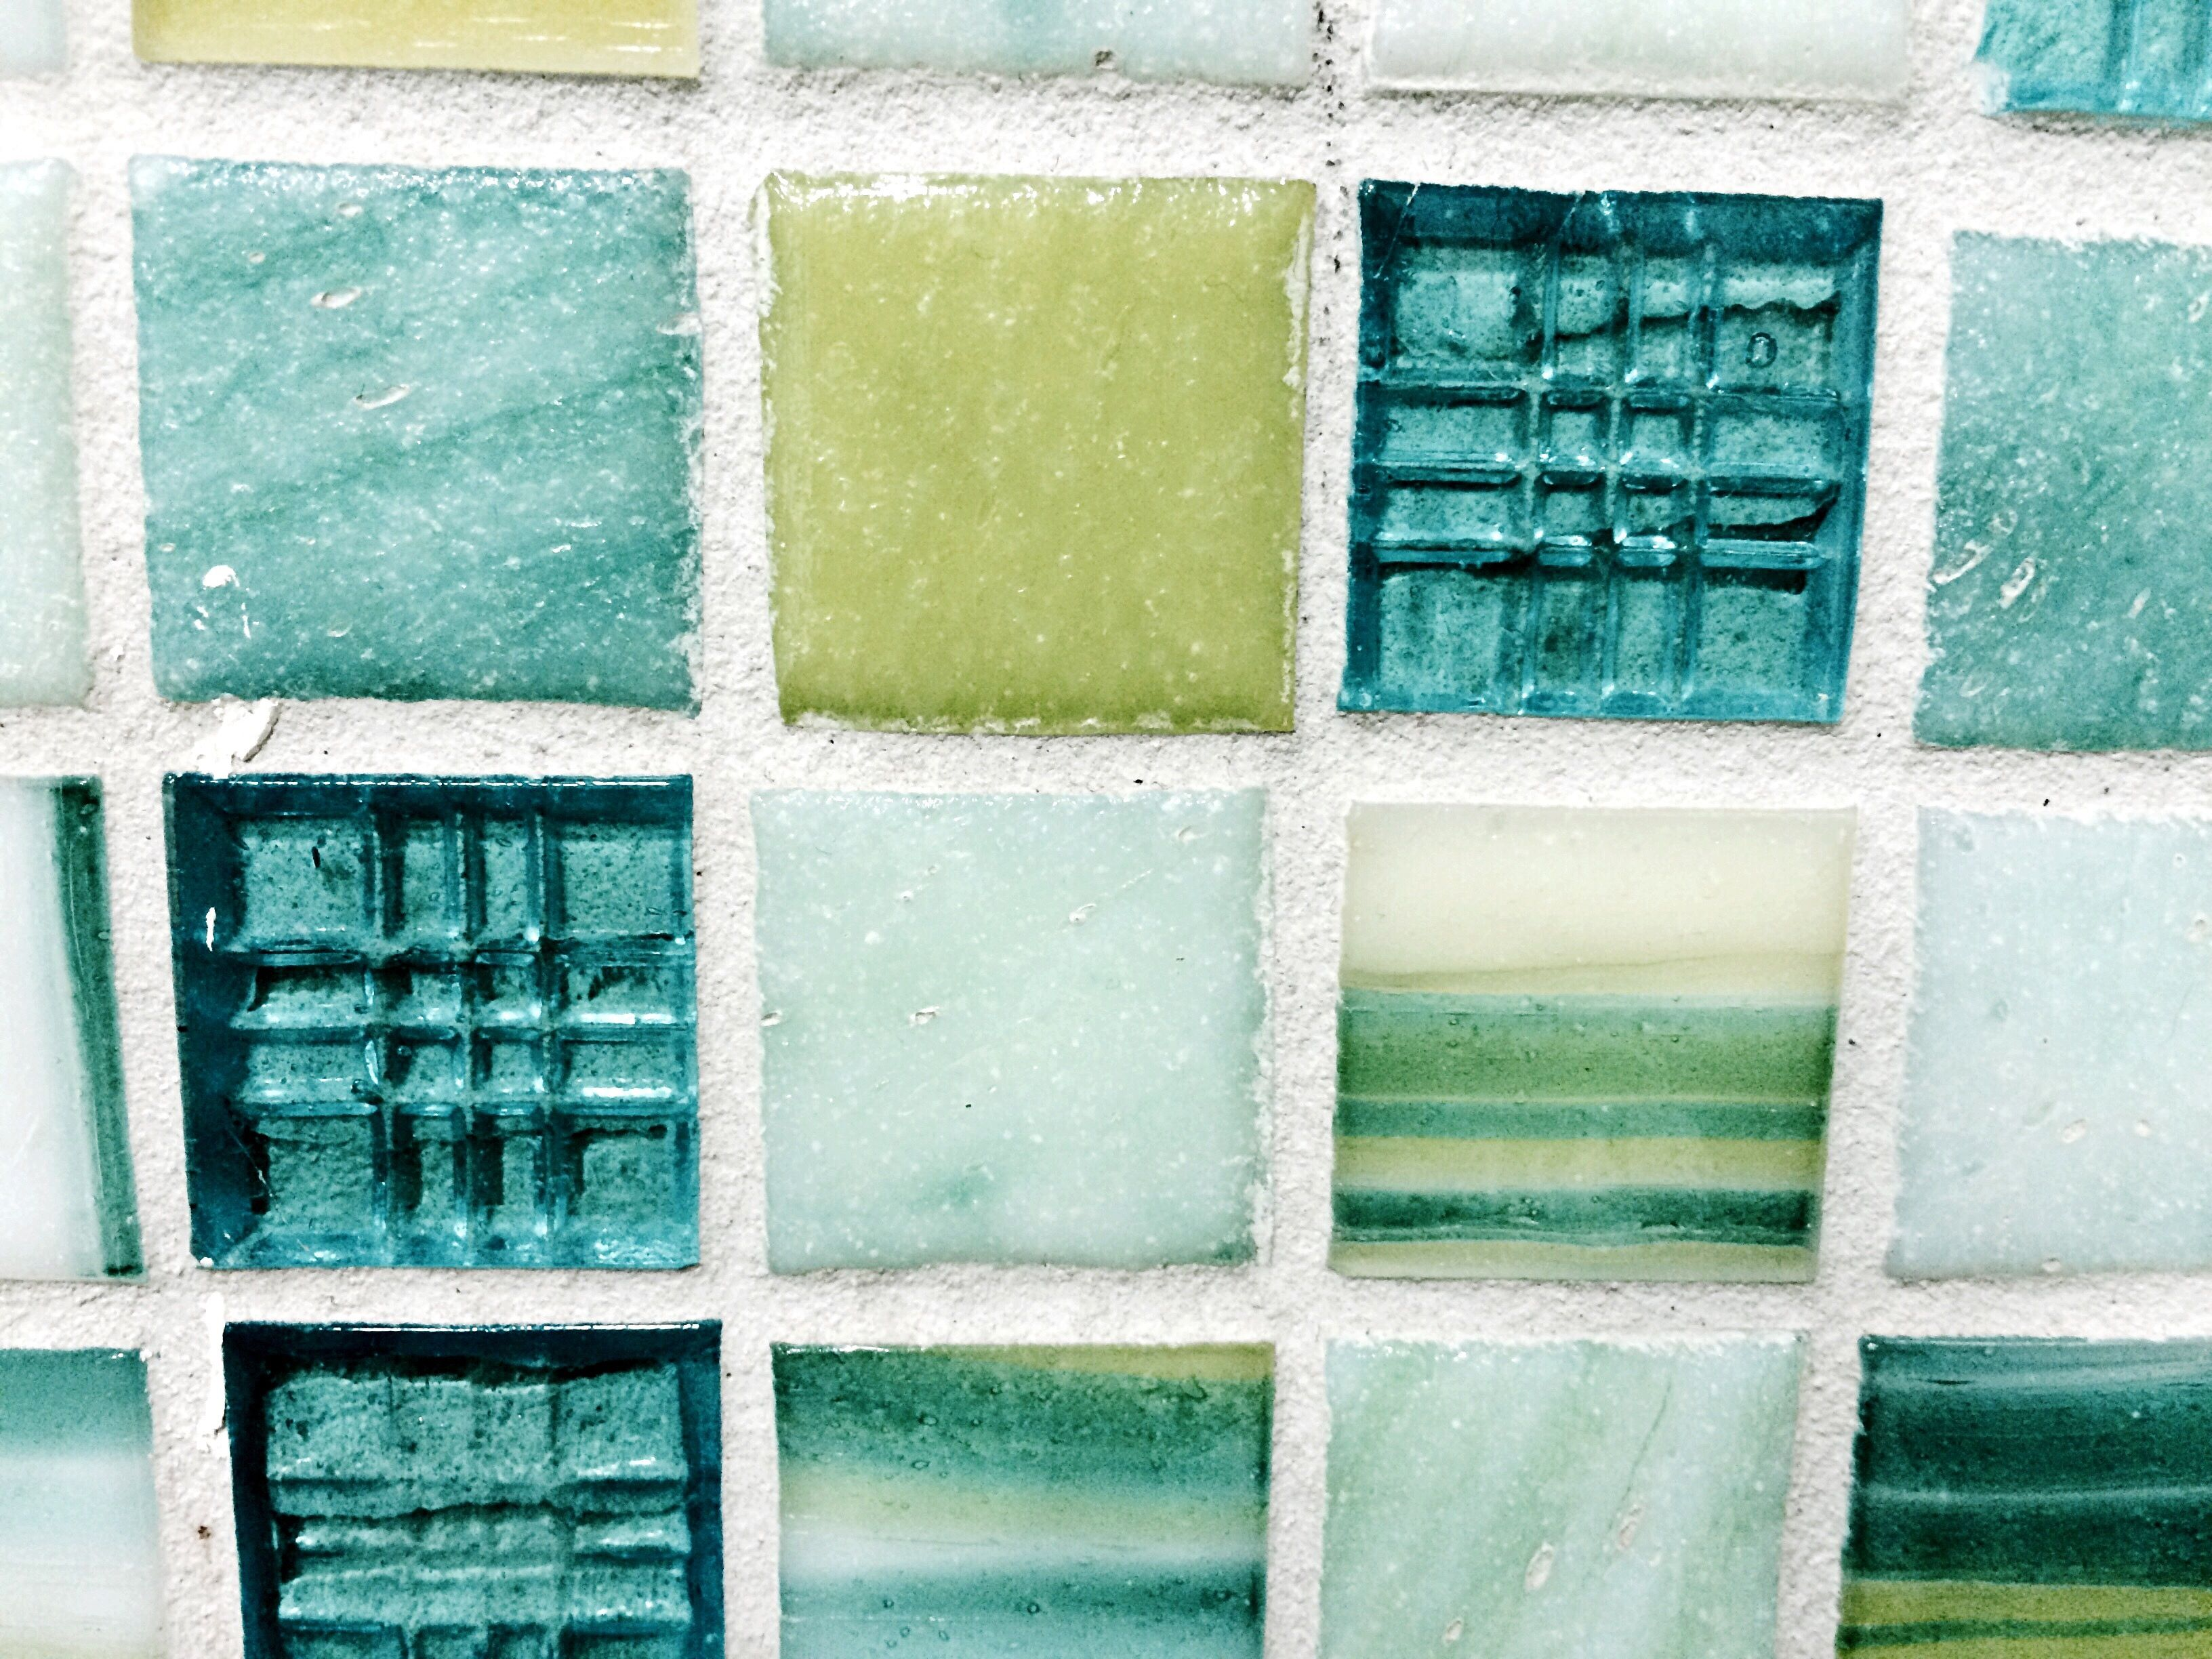 Should You Install a Glass Tile Backsplash? Which Type?